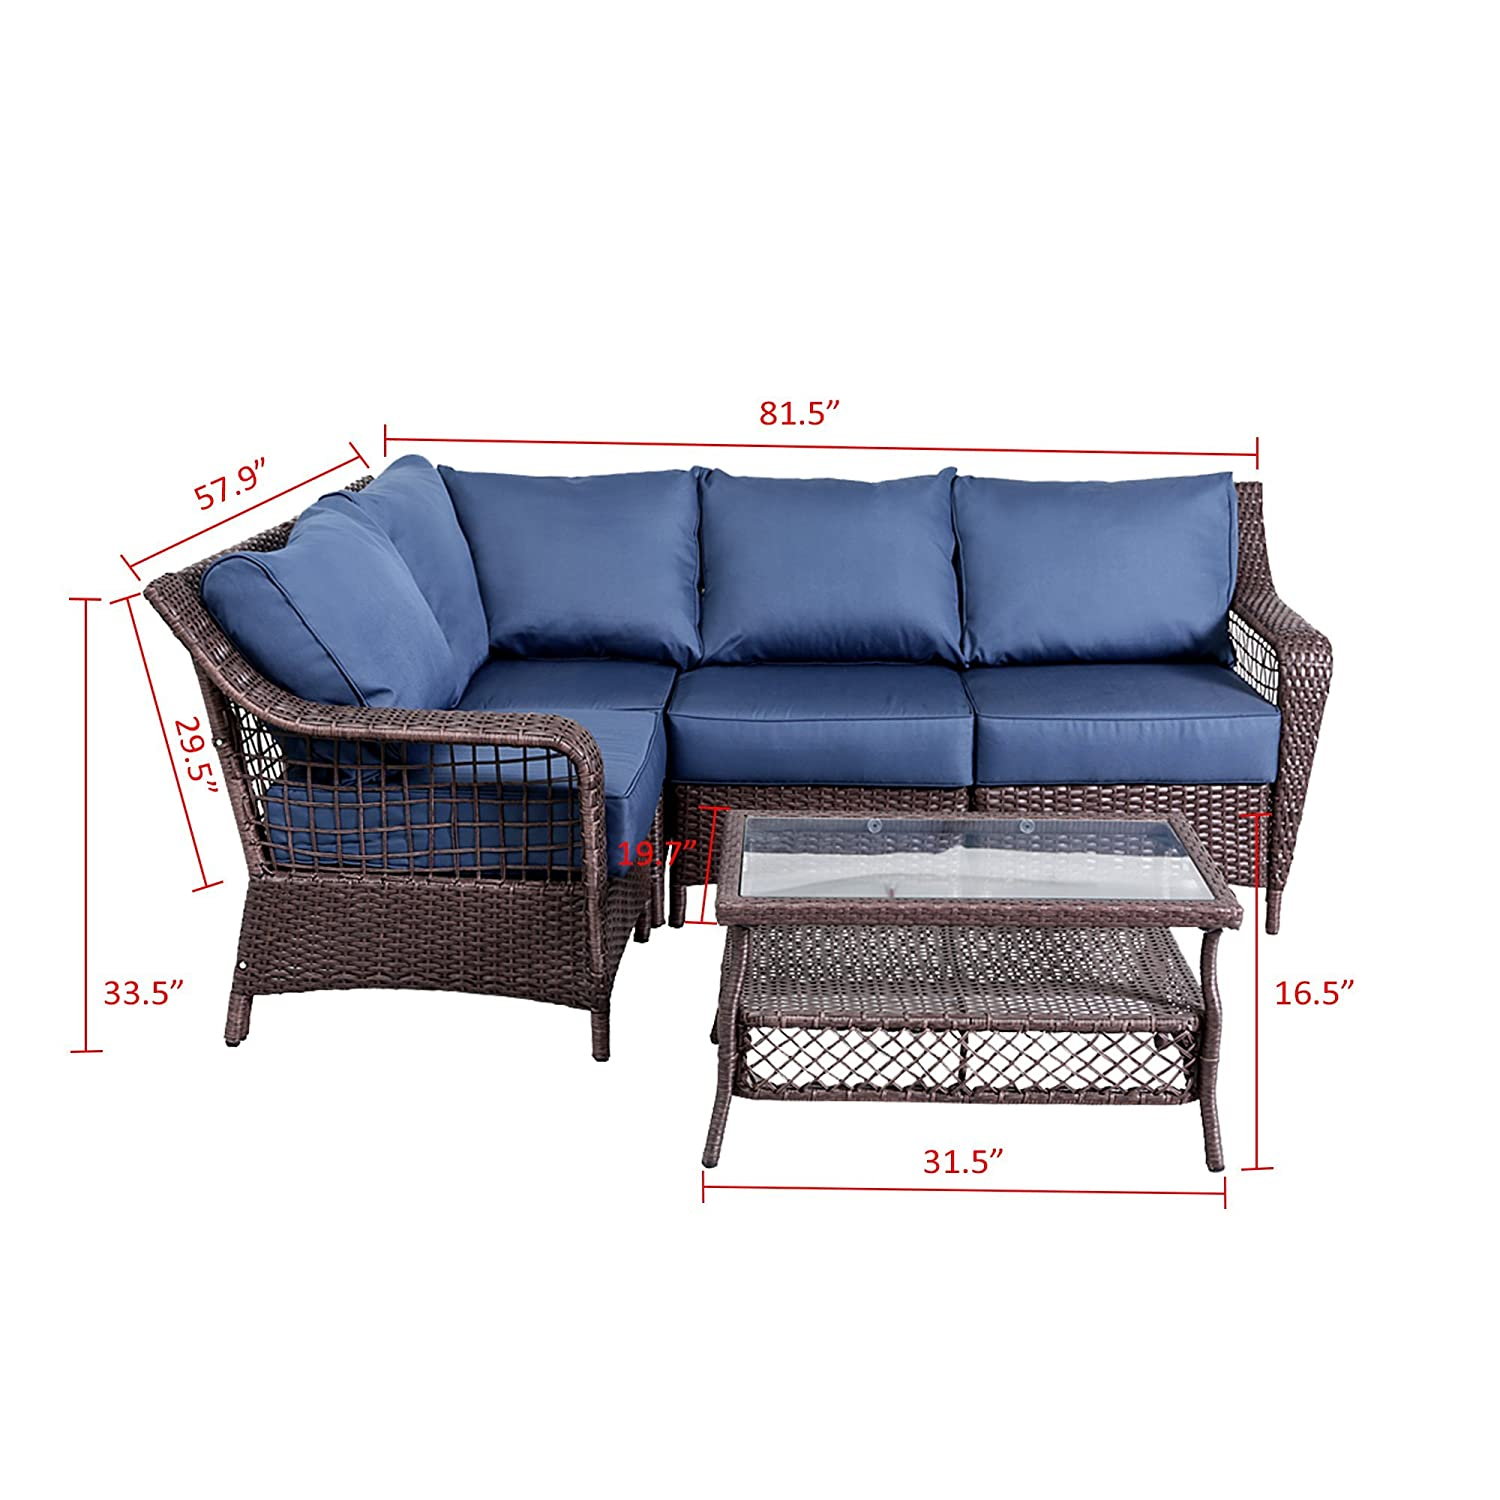 Amazon Com 5pc Outdoor Pe Wicker Rattan Sectional Furniture Set